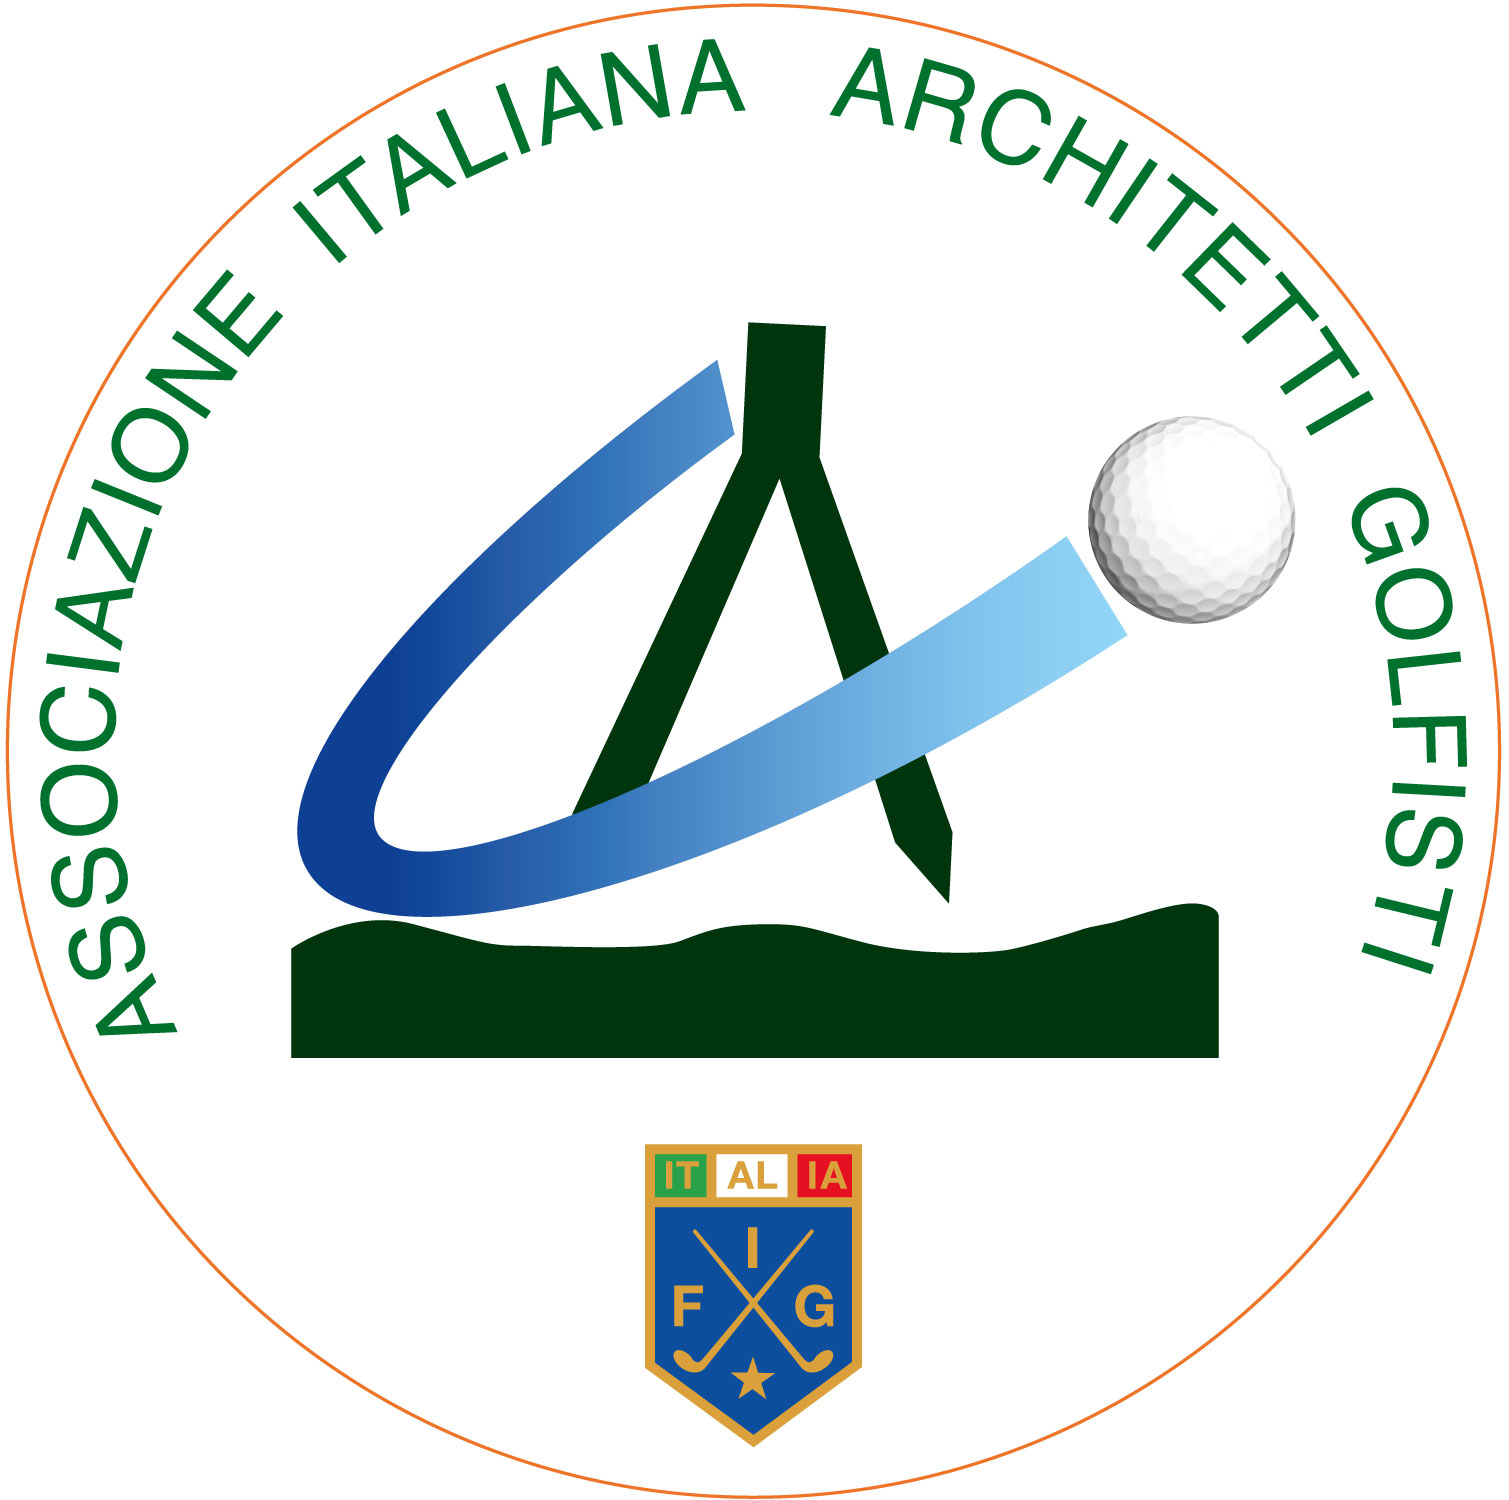 ADESIVO-ARCHIGOLF-6x62-1.png